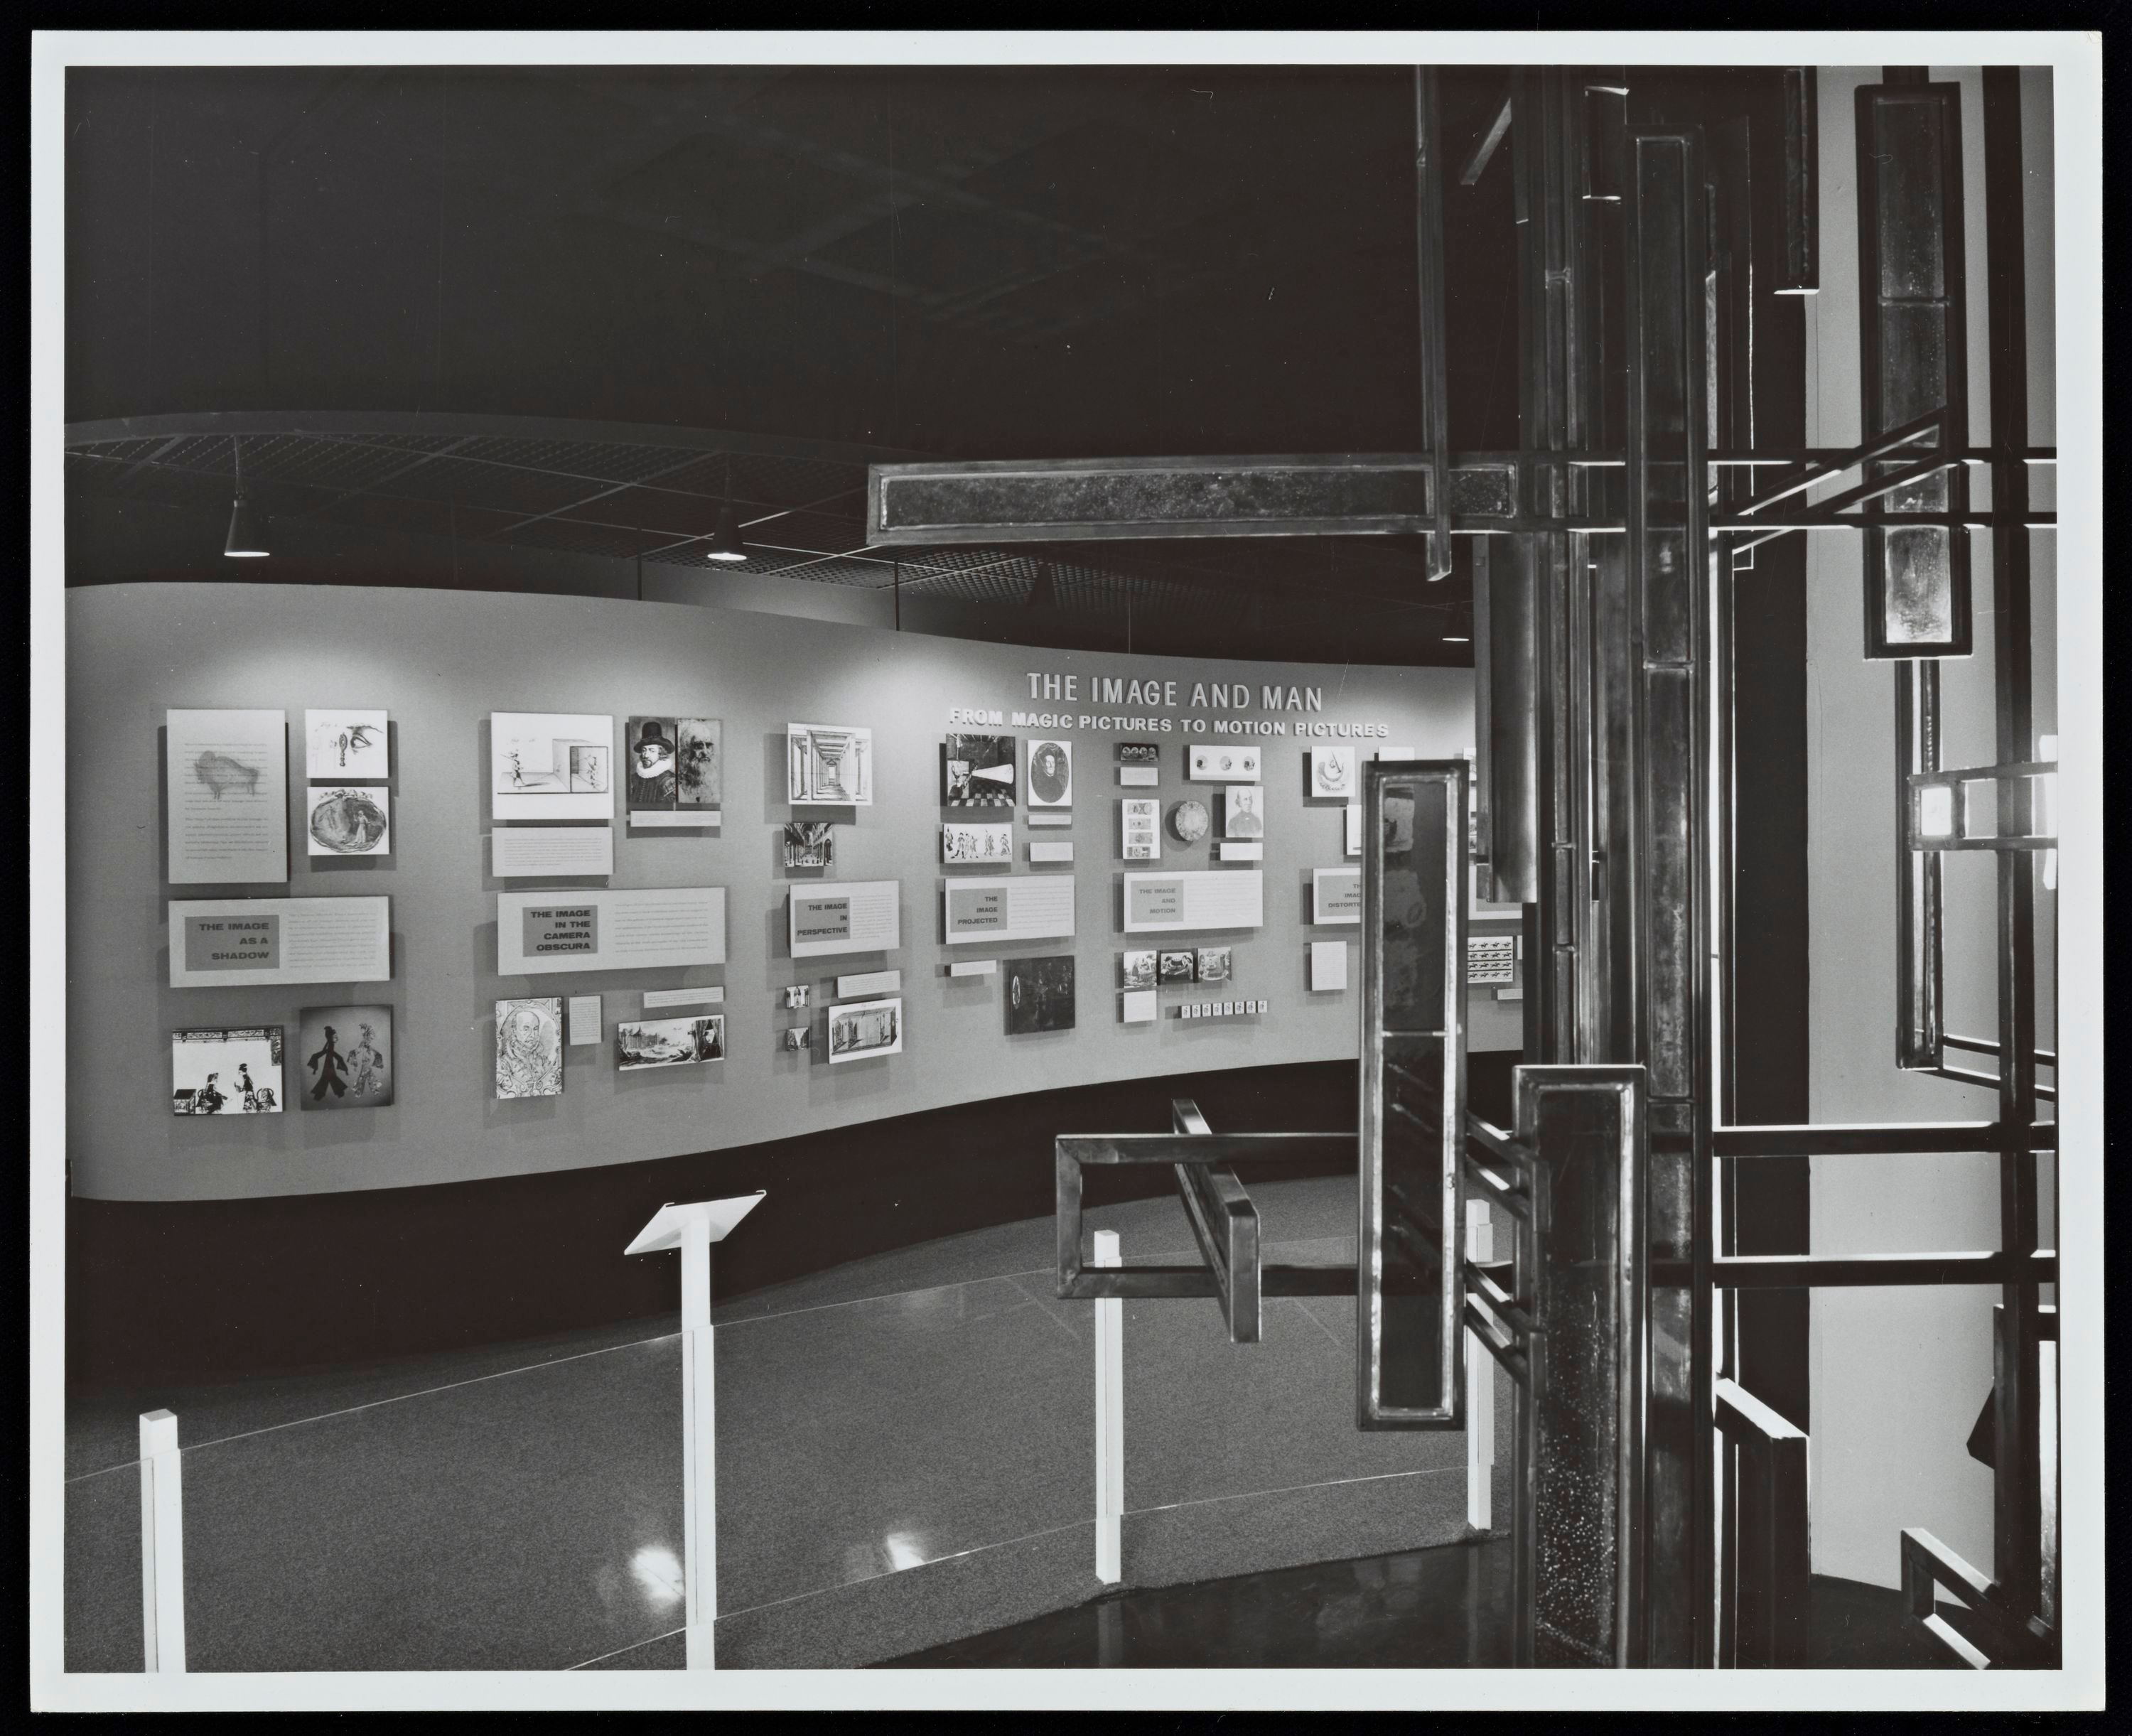 Exhibit at Lytton Center